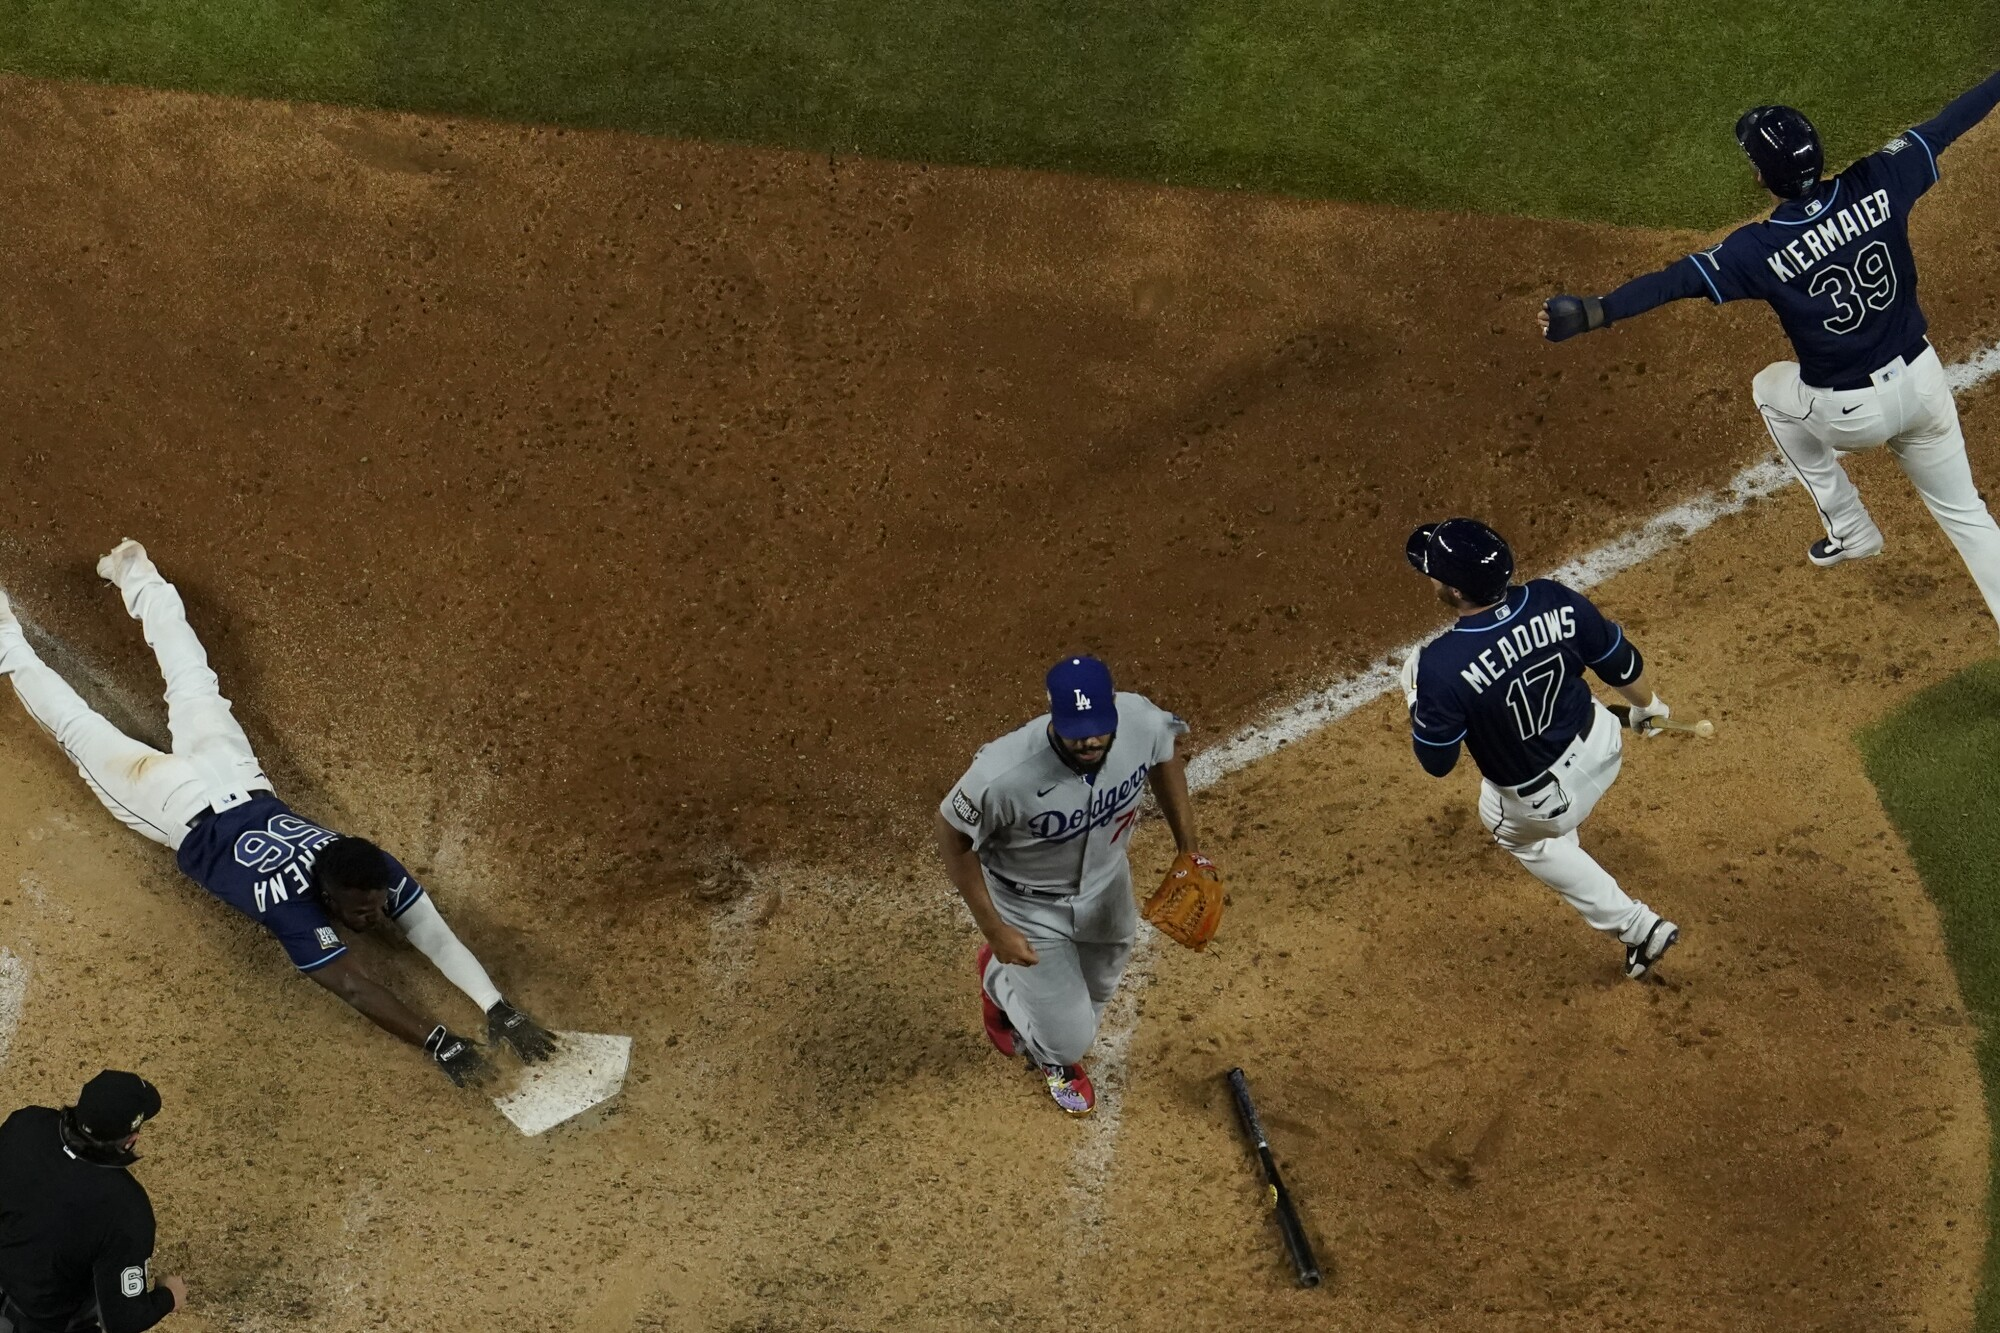 Tampa Bay's Randy Arozarena scores the winning run against the Dodgers in Game 4 of the World Series.